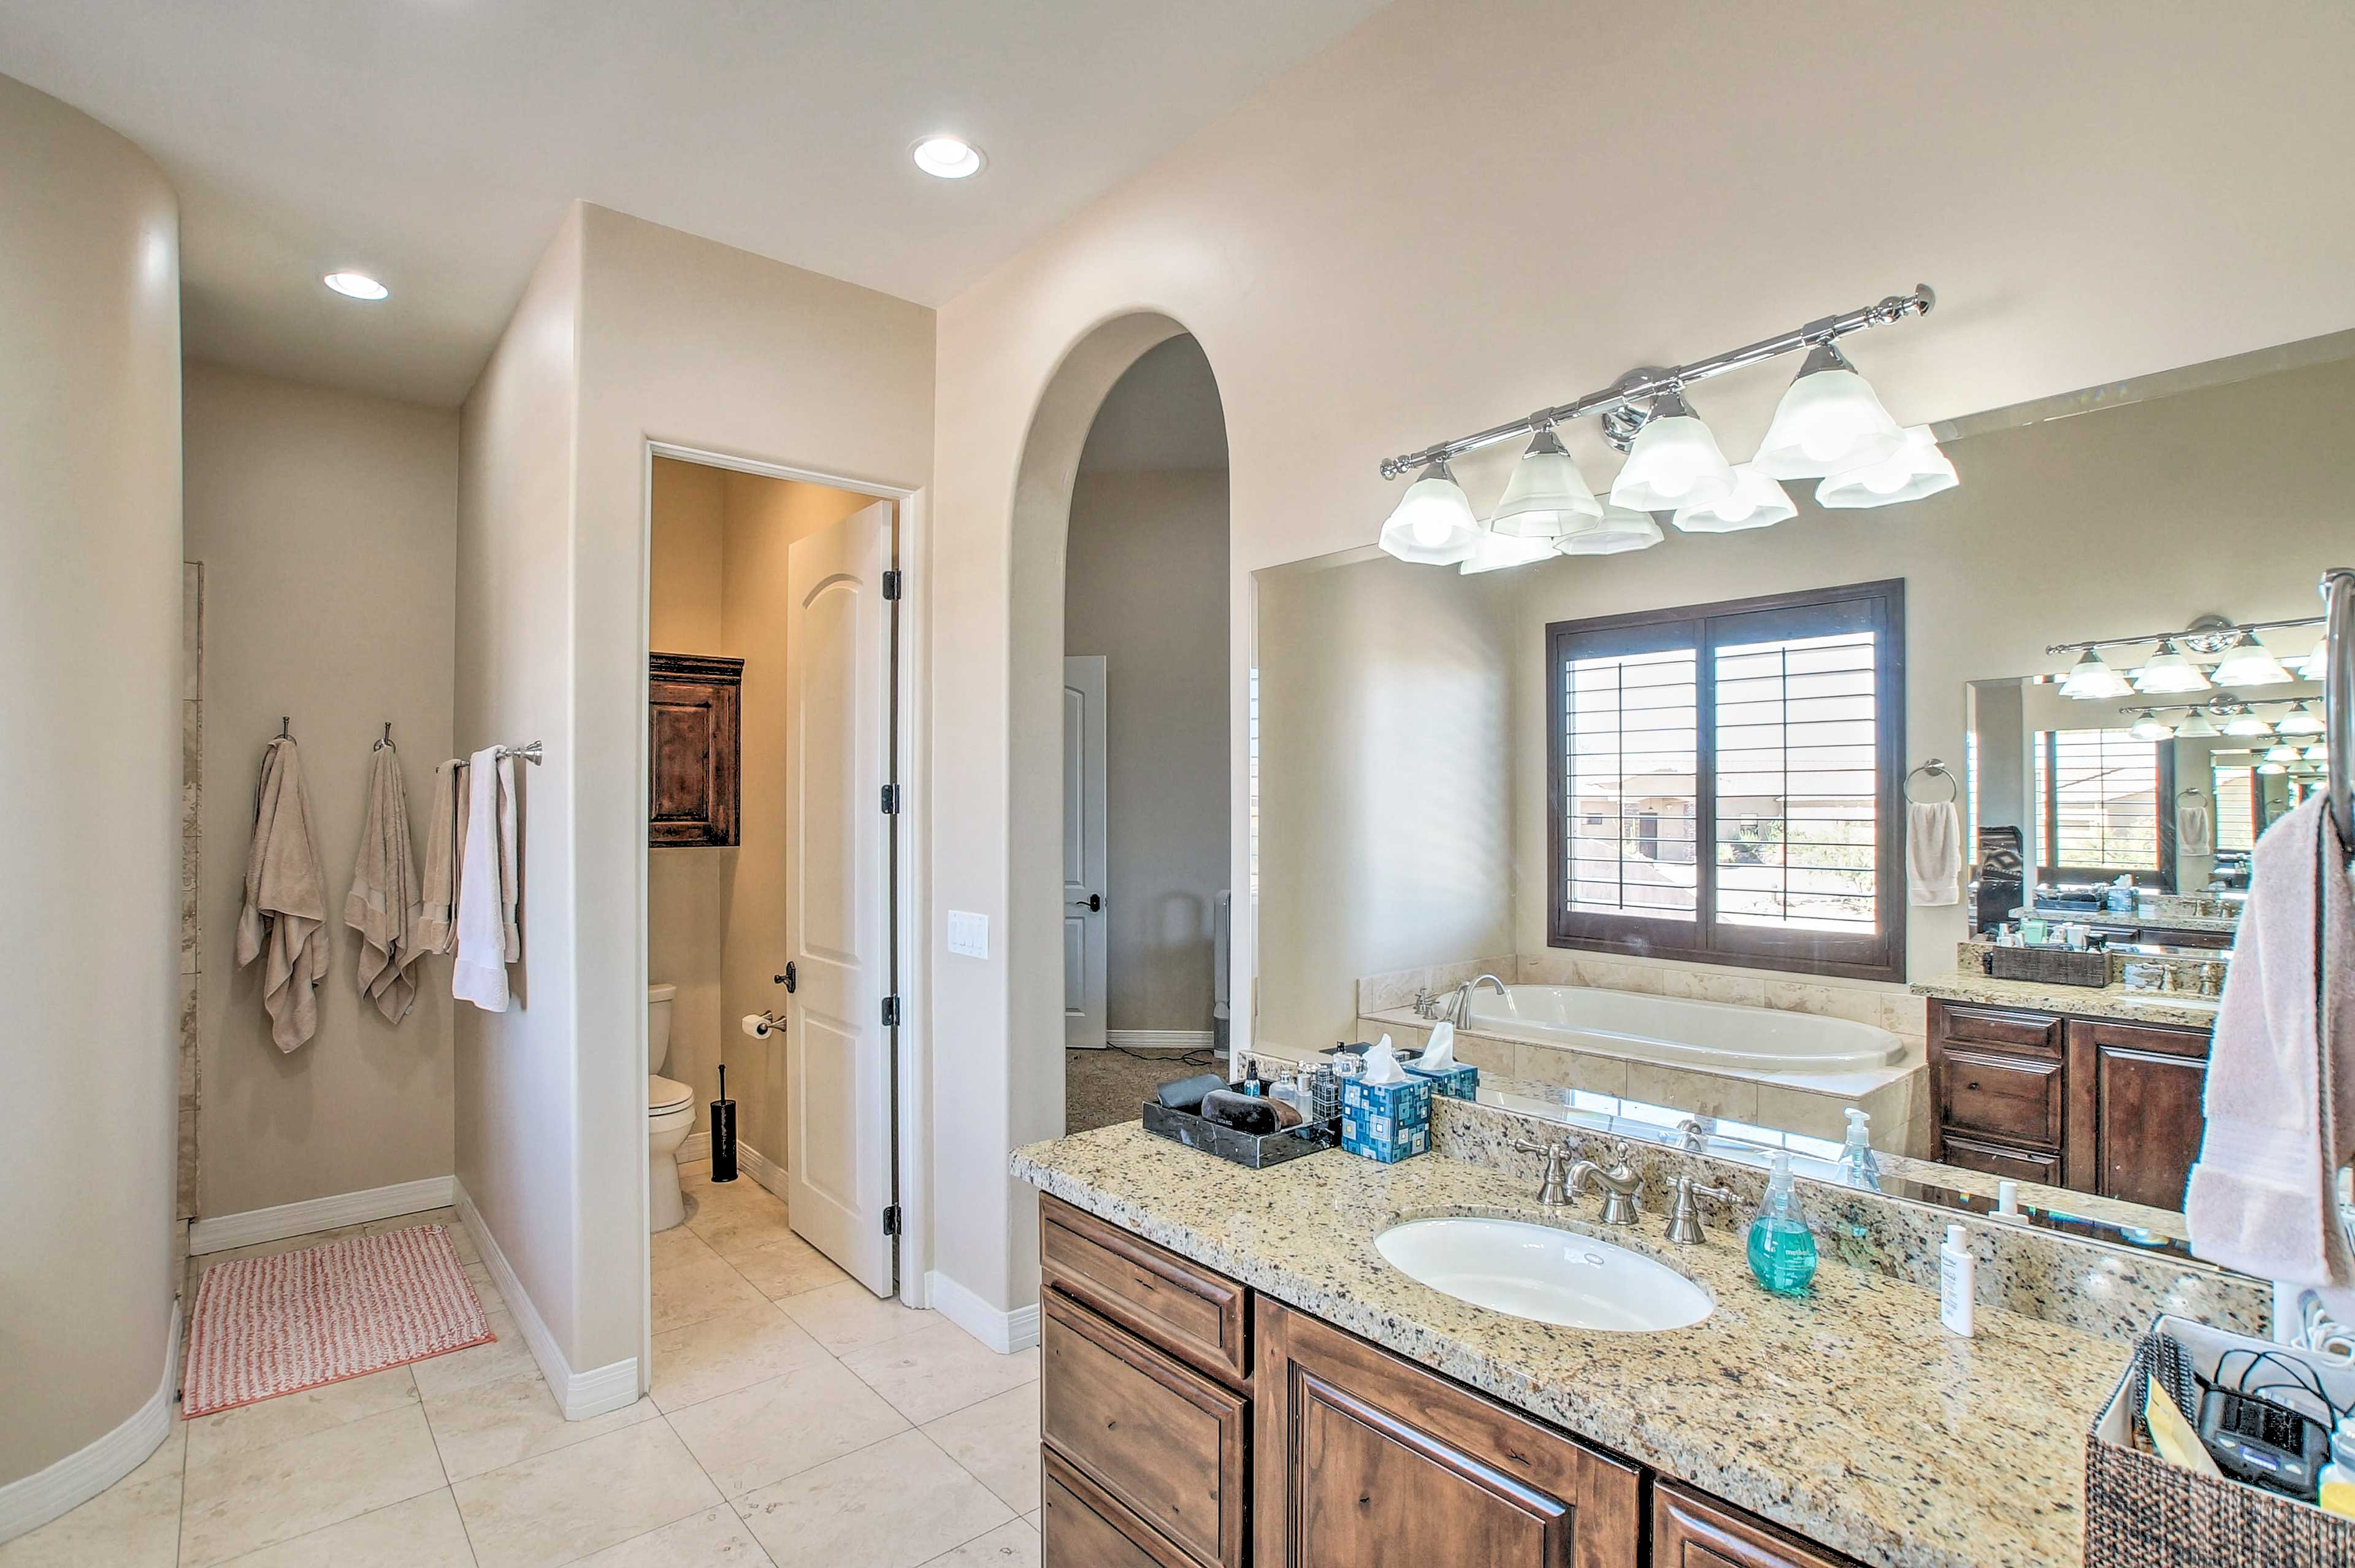 Getting ready will be easy in the spacious bathroom.